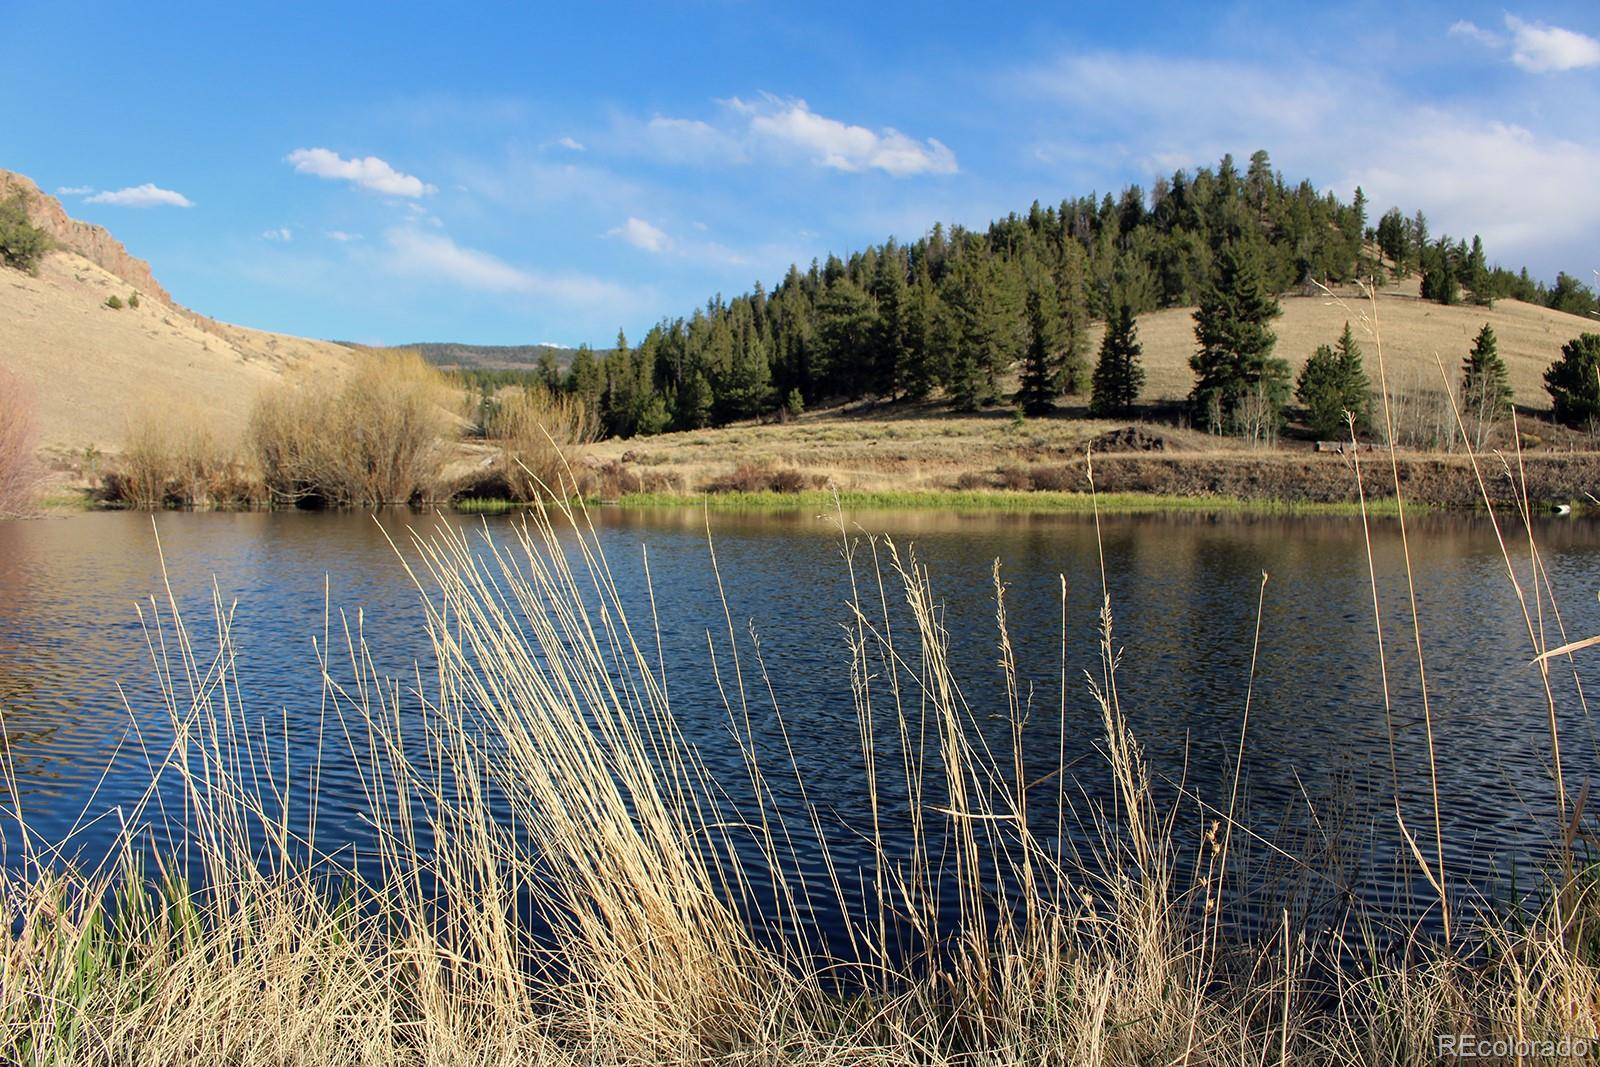 Surrounded by BLM and Forest Service, this 160 acre getaway mountain property is located just west of Saguache and just 1 hour from the Gunnison Airport. Deeded water rights, year round stream, 4 ponds, and a hand-built cabin certify this as a rare gem in the Colorado market. Currently used as a horse/hunting property with portable loafing pens, round training pen and arena space already in place. The unique trail system through the property allows access for hiking, mountain biking, horse riding and four wheeling through rocky cliffs, open grasslands, ponderosa forests and bird filled wetlands. Ruins from the original homesteader cabin provide a glimpse into the history of this abundant land and show that the new cabin is situated perfectly, protected by stunning canyon walls and rocky outcroppings, while still providing an open view in three directions. The well built cabin can sleep 4 comfortably with a clear view of the ponds from the front porch. The cabin is well insulated and appointed with solar panels, generator and a 500 gallon propane tank, septic and domestic well. A well planned kitchen area and full bathroom with shower make this the perfect remote getaway property.  A camouflaged container on site is designed for storage of tools and vehicles for instant use.. Abundant with wildlife including elk, deer, turkey, bear, mountain lion, antelope and even an occasional. A remarkable and valuable opportunity for a discriminating buyer.